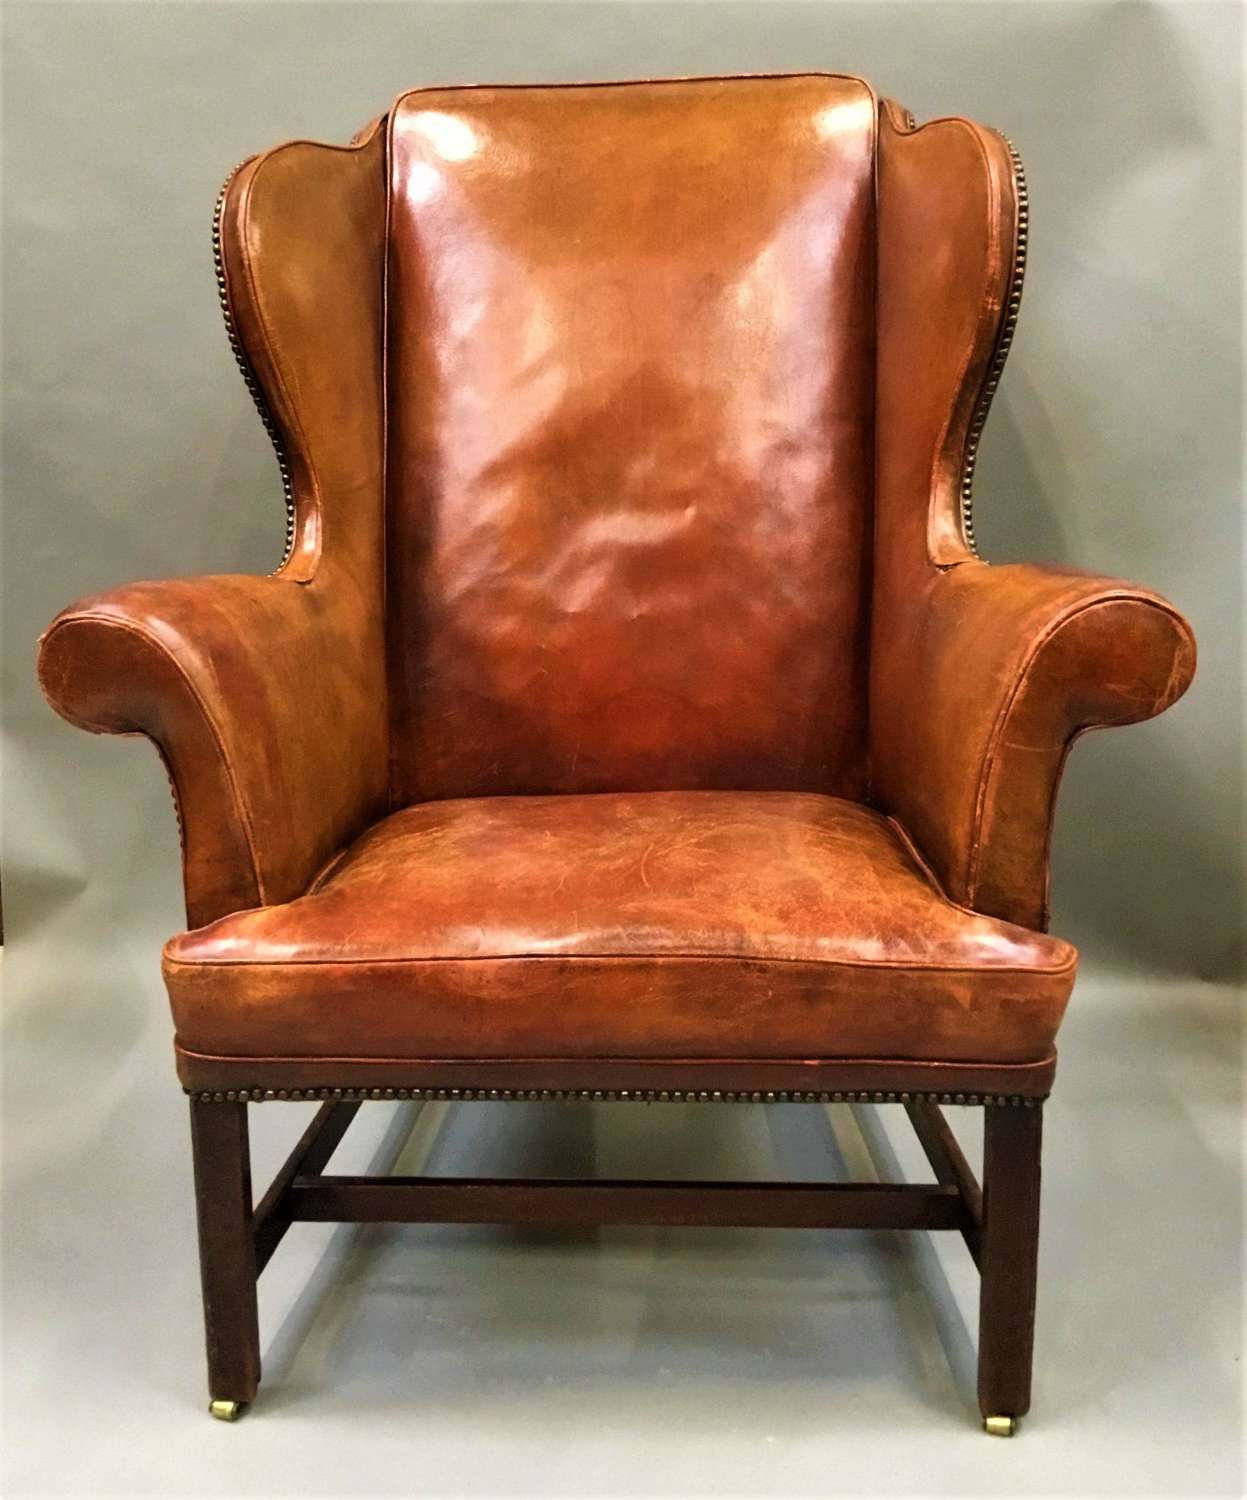 George III mahogany and leather wing chair